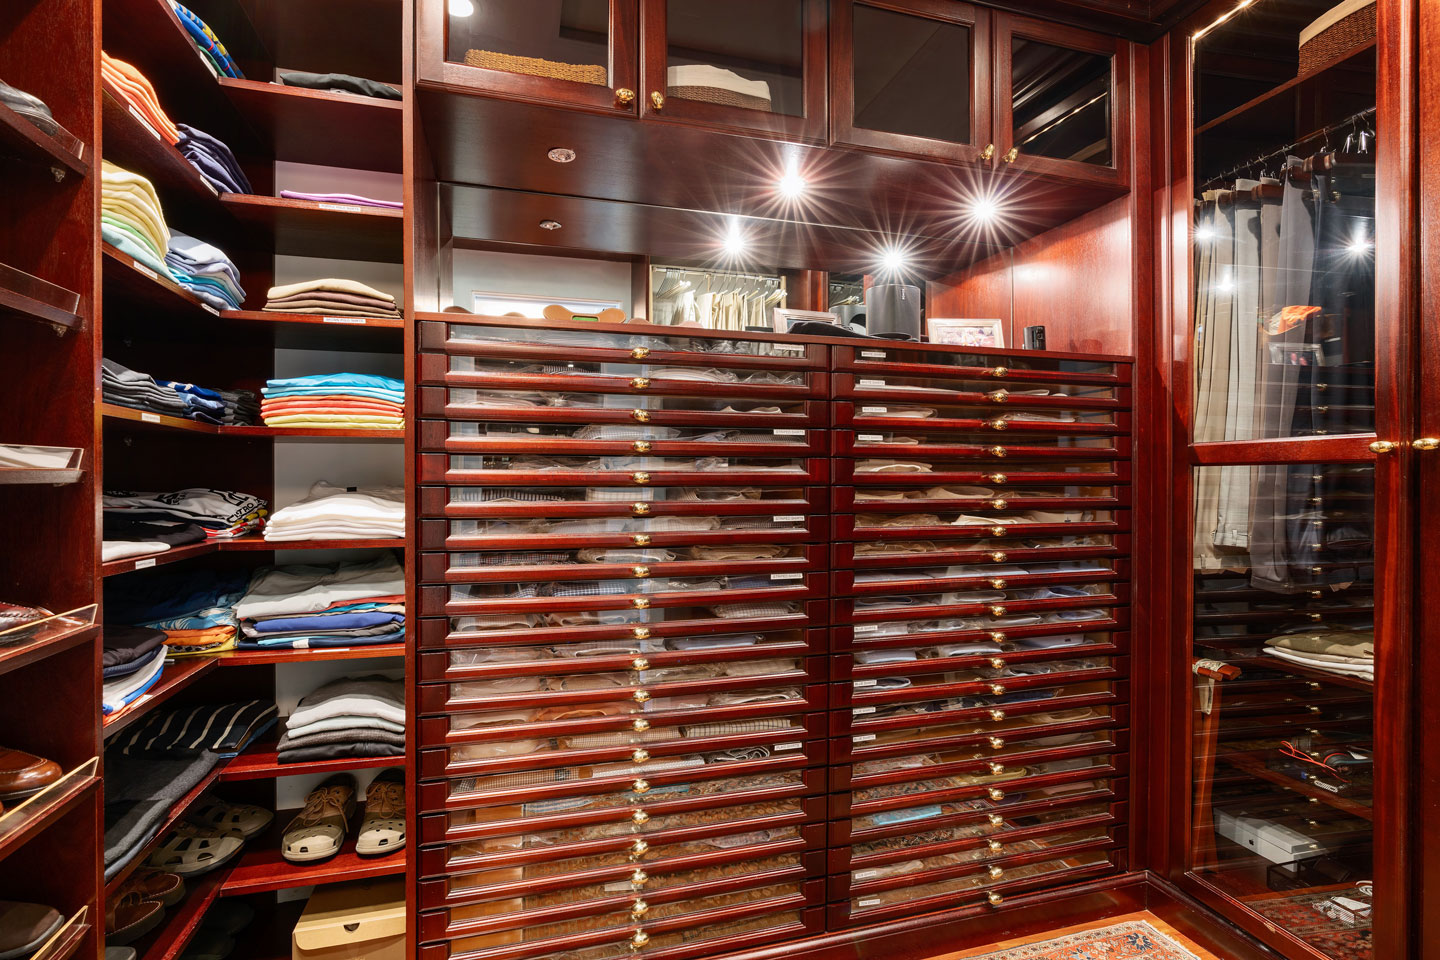 3725 Leafy Way, Coconut Grove, Miami, Florida, USA | A Walk-In Closet | Listed by Dennis Carvajal, Real Estate Agent, ONE Sotheby's International Realty | Finest Residences